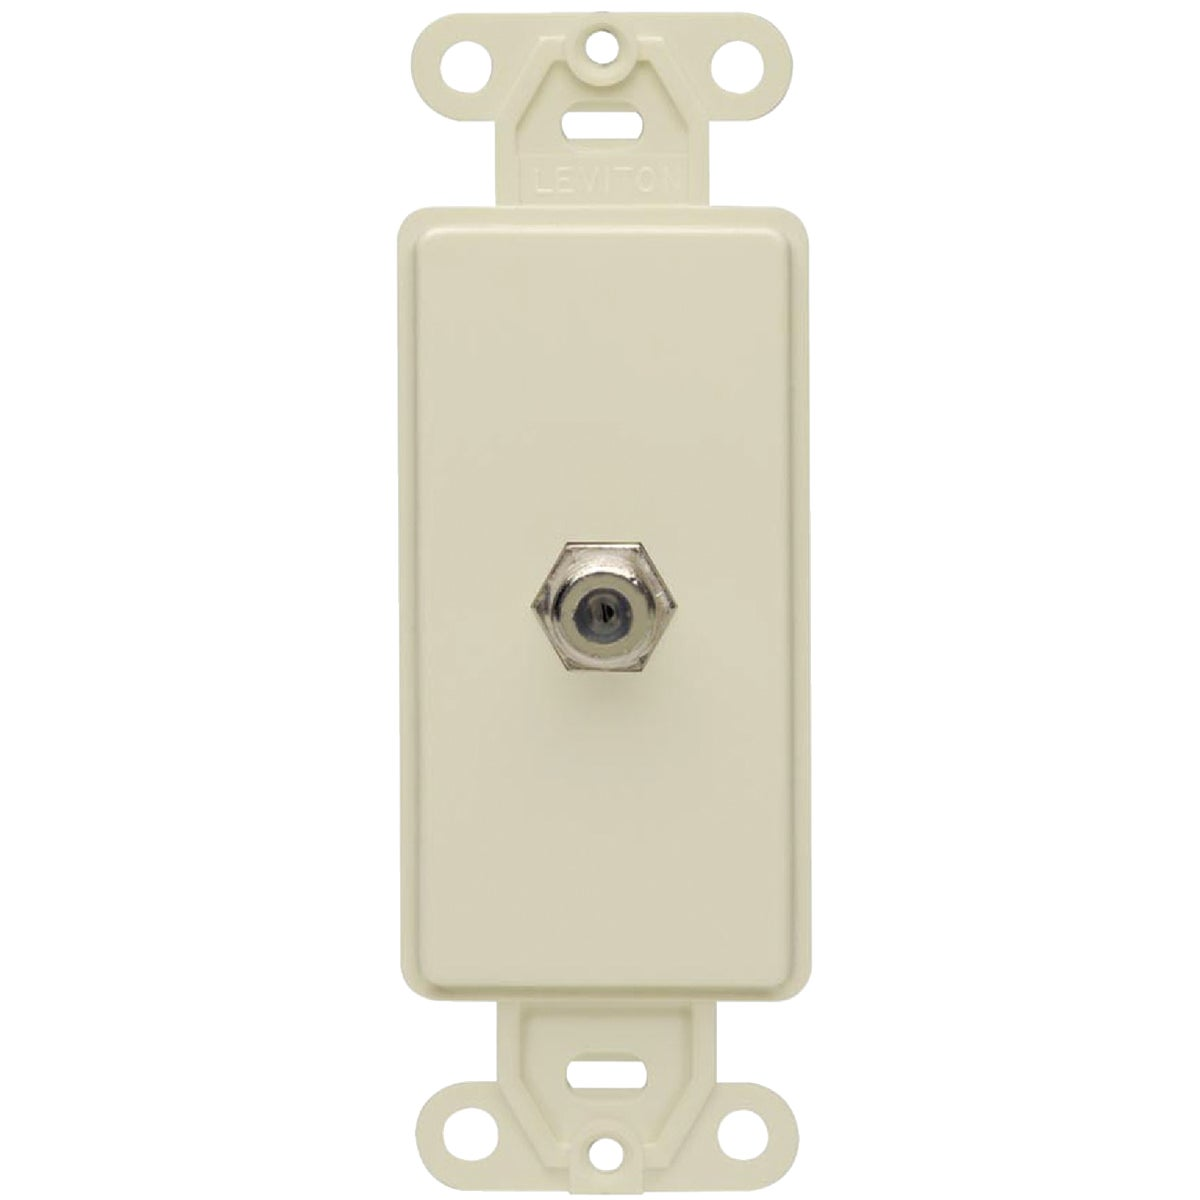 IV COAX JACK - 023-40681-I by Leviton Mfg Co